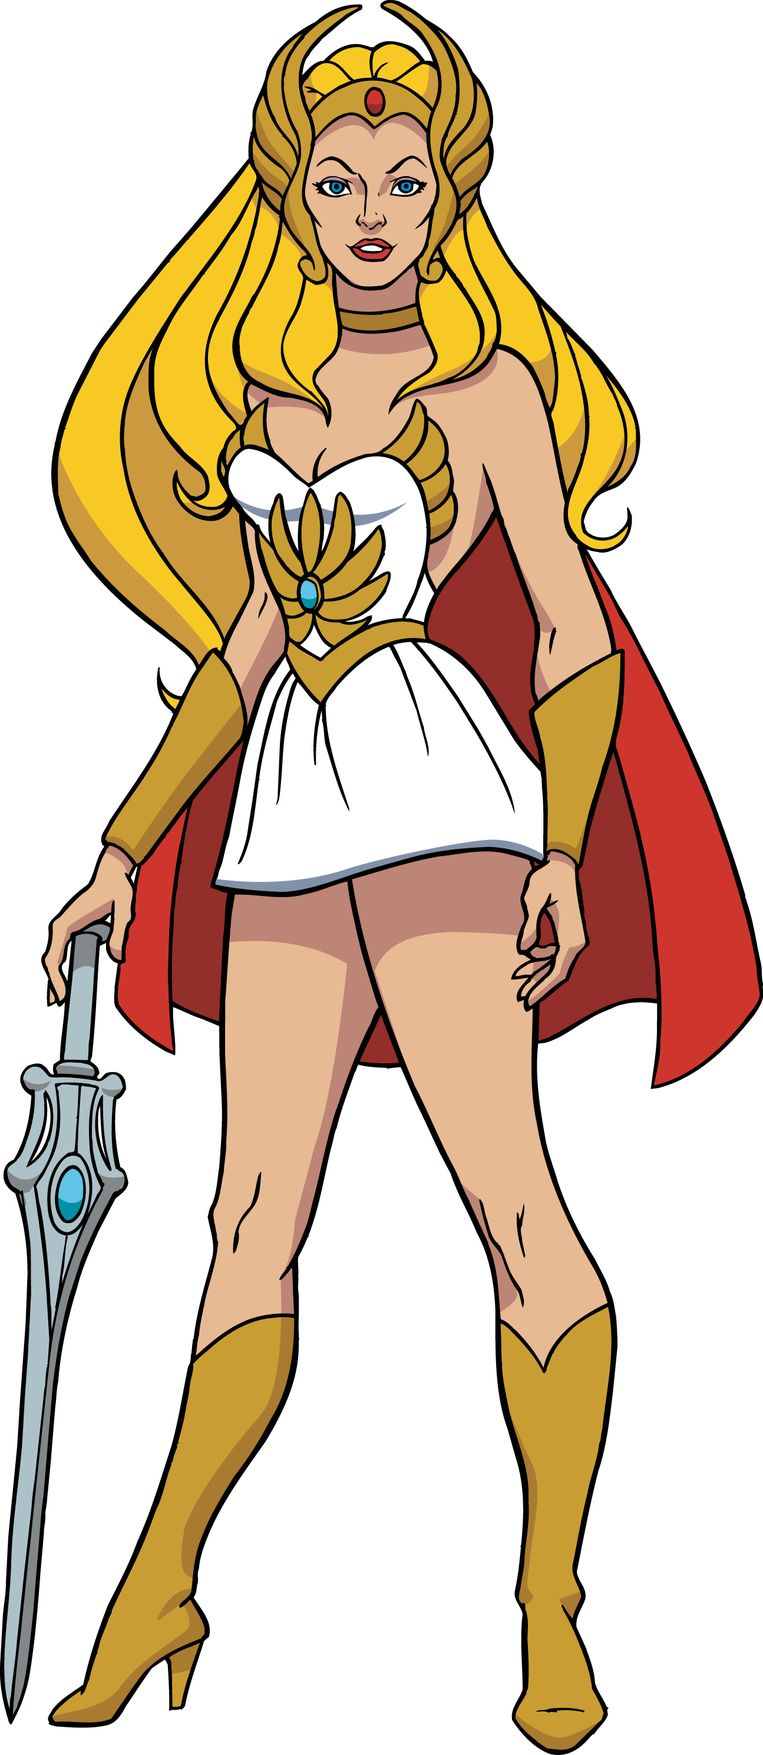 She-ra he-man - Kylie Minogue